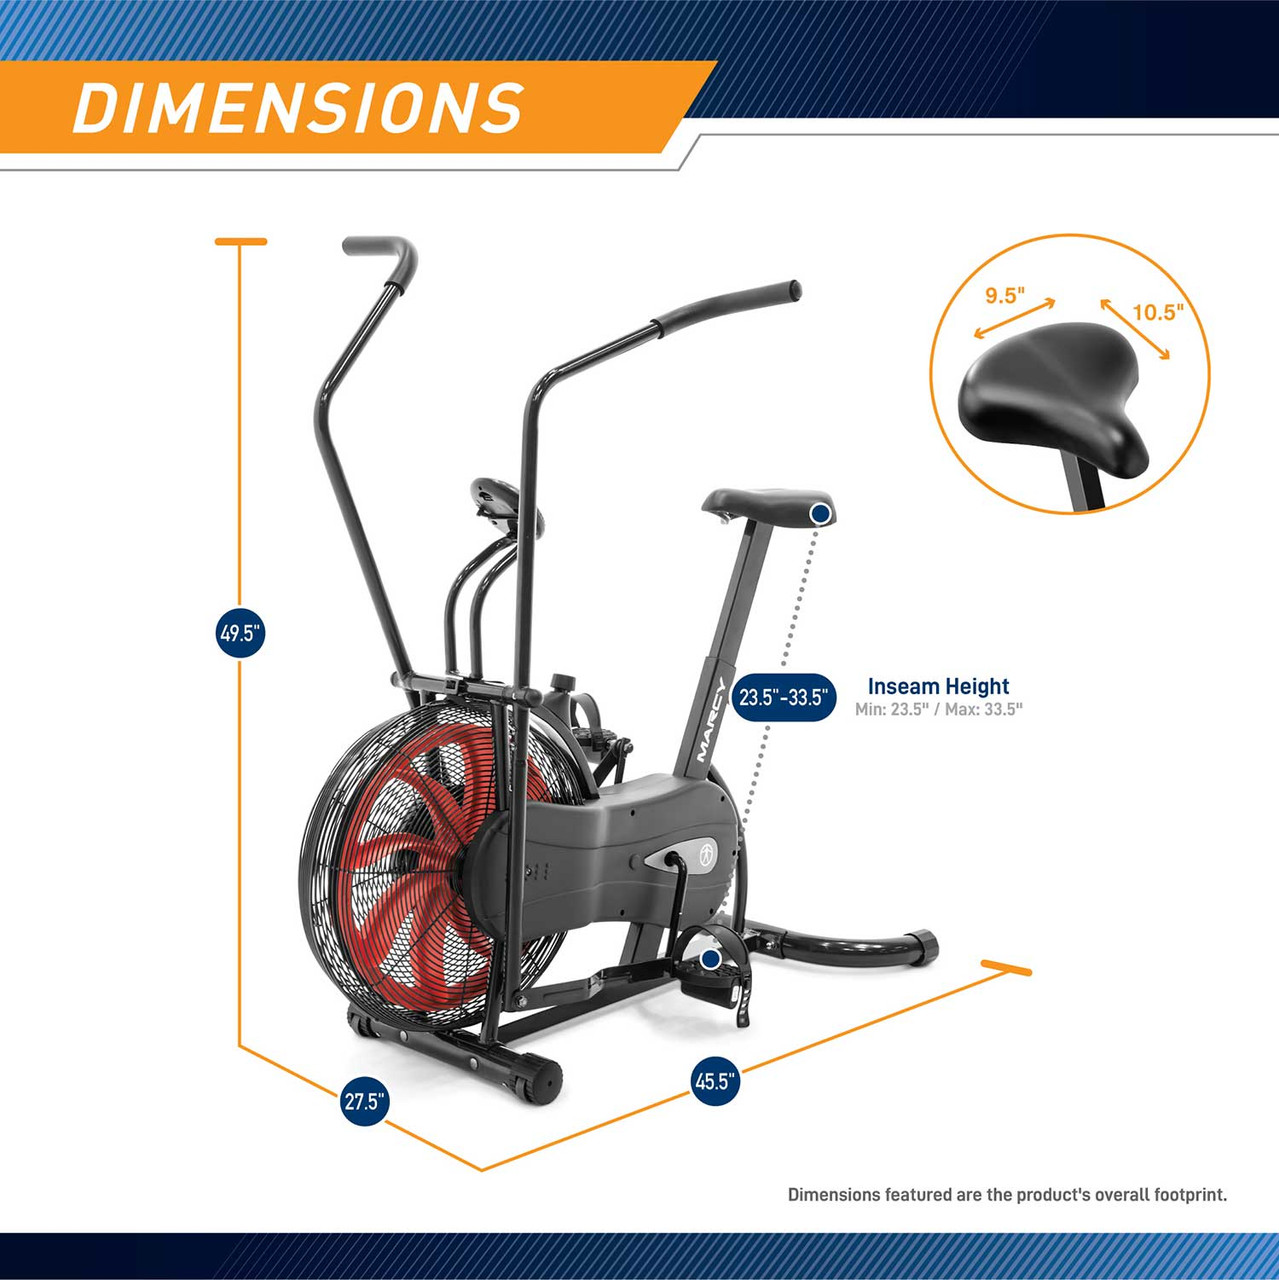 The Marcy Fan Bike NS-1000 has an adjustable seat to fit any user